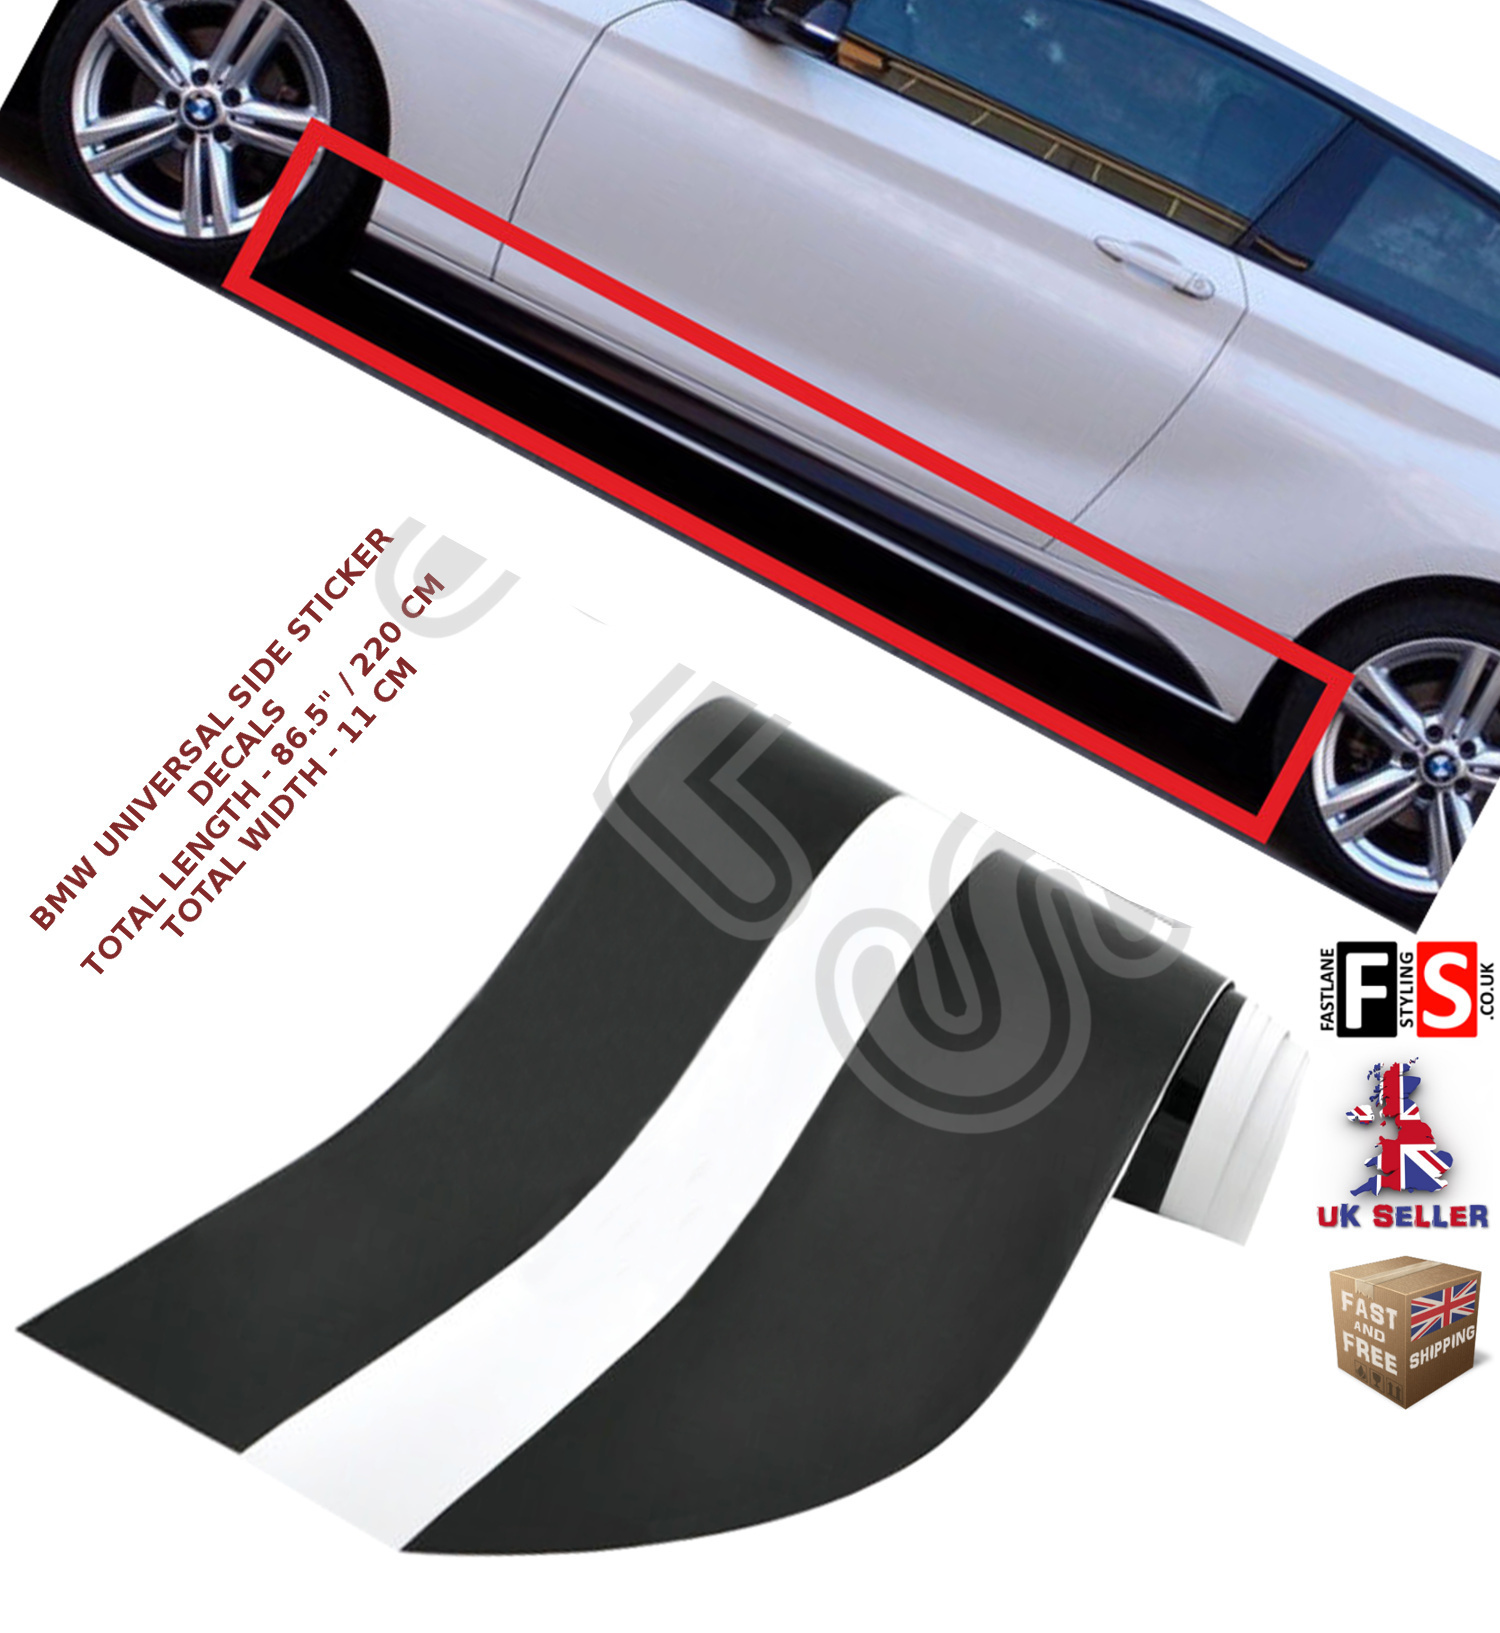 Details About Bmw 3 Series F30 F31 M Performance Side Stickers Skirts Decals Vinyl Graphics